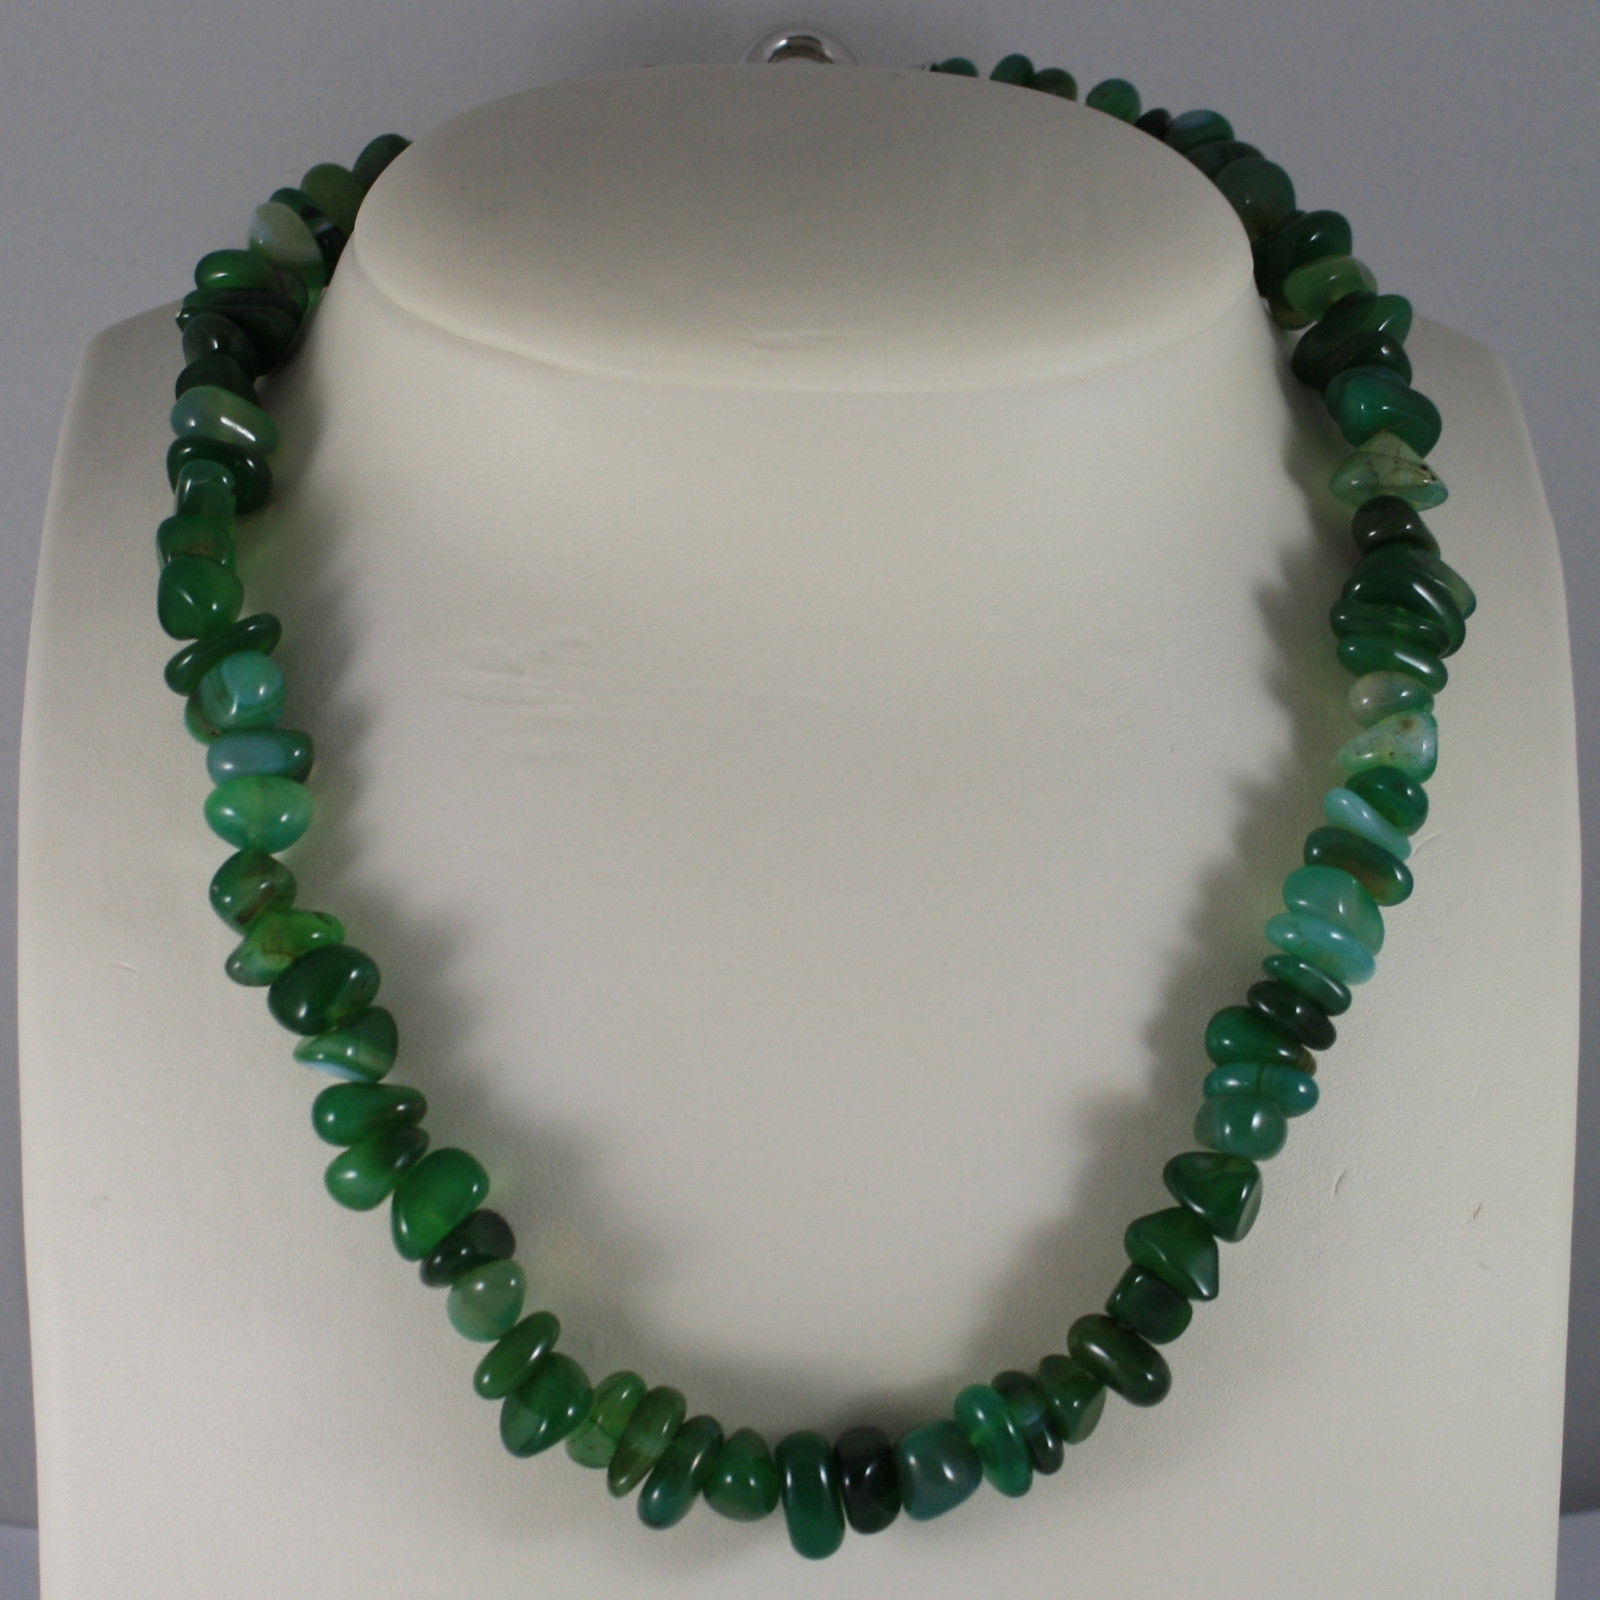 .925 RHODIUM SILVER NECKLACE WITH GREEN JADE AND CLOSING  IN SILVER